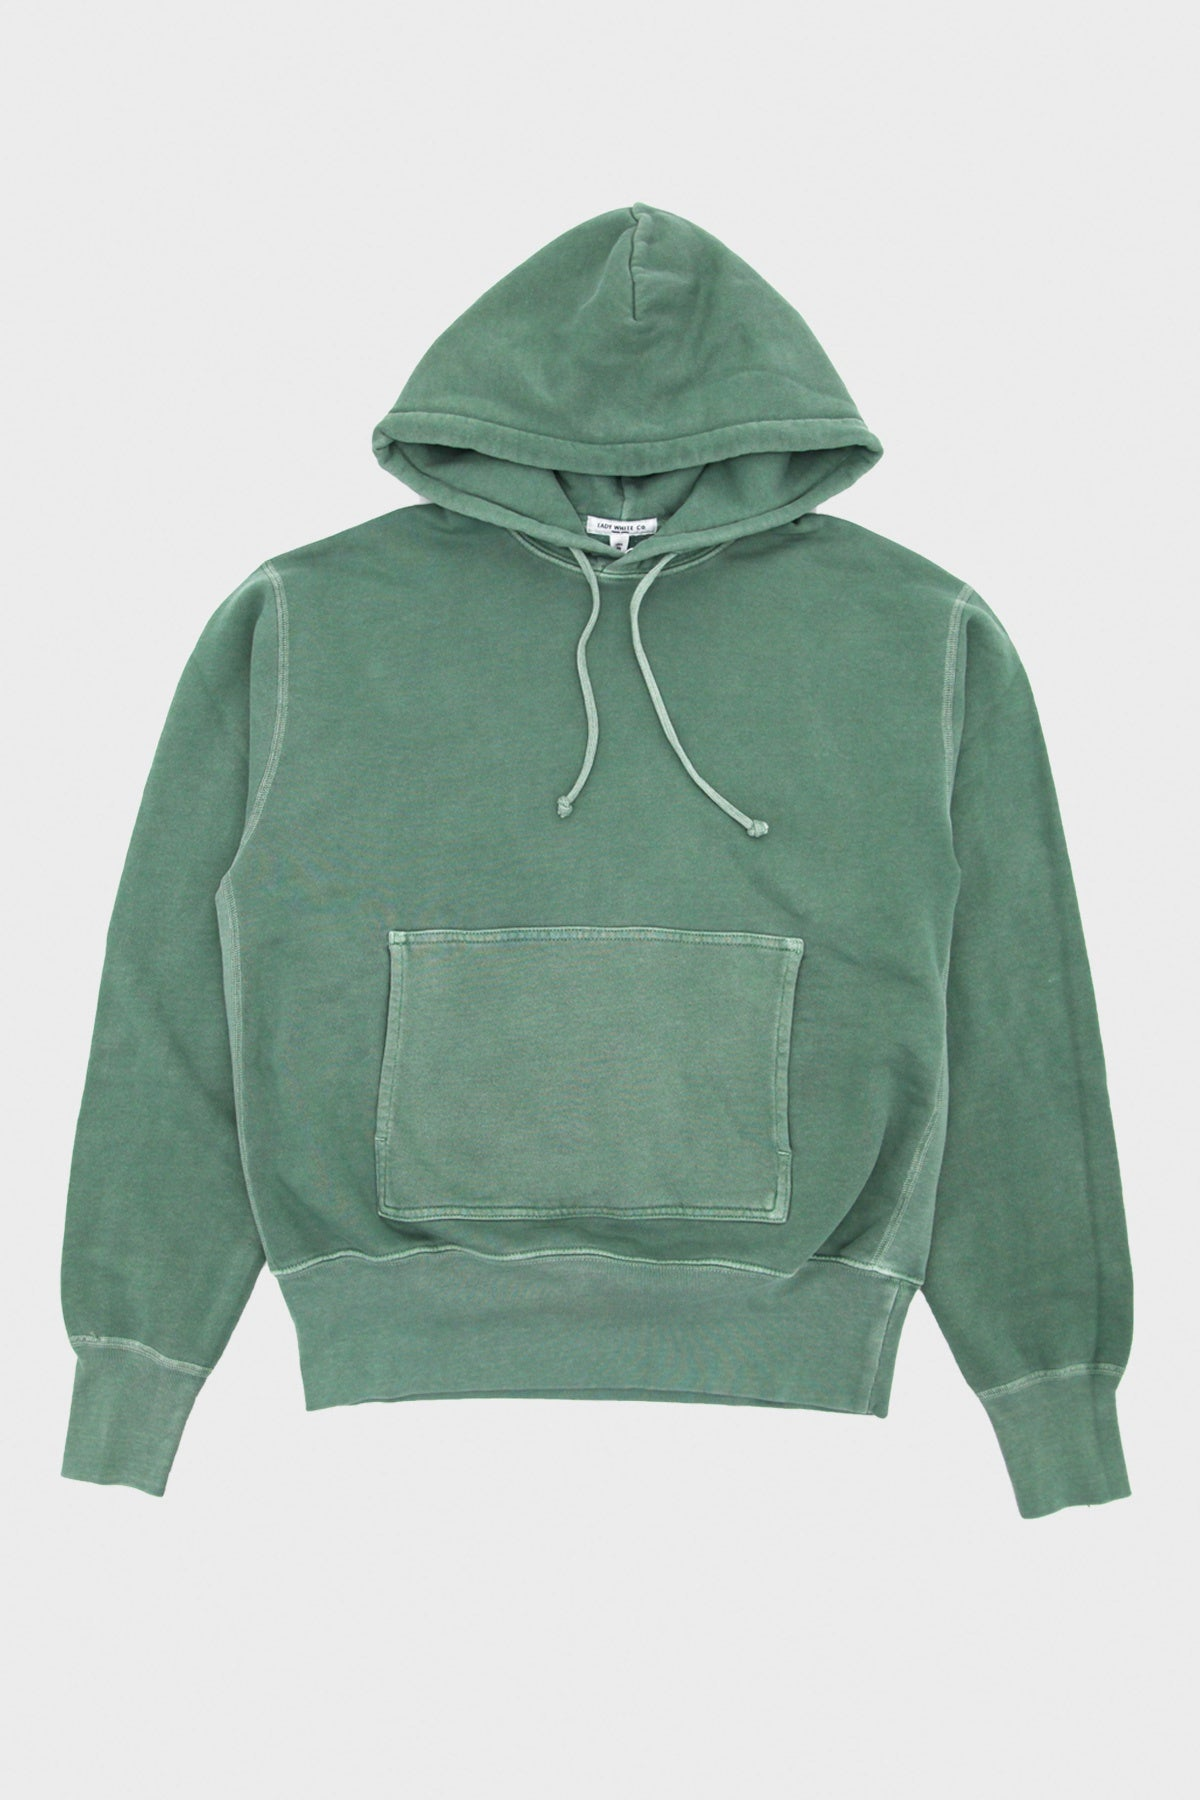 Lady White Co. - Canoe Club Hoodie - Chalk Green - Canoe Club